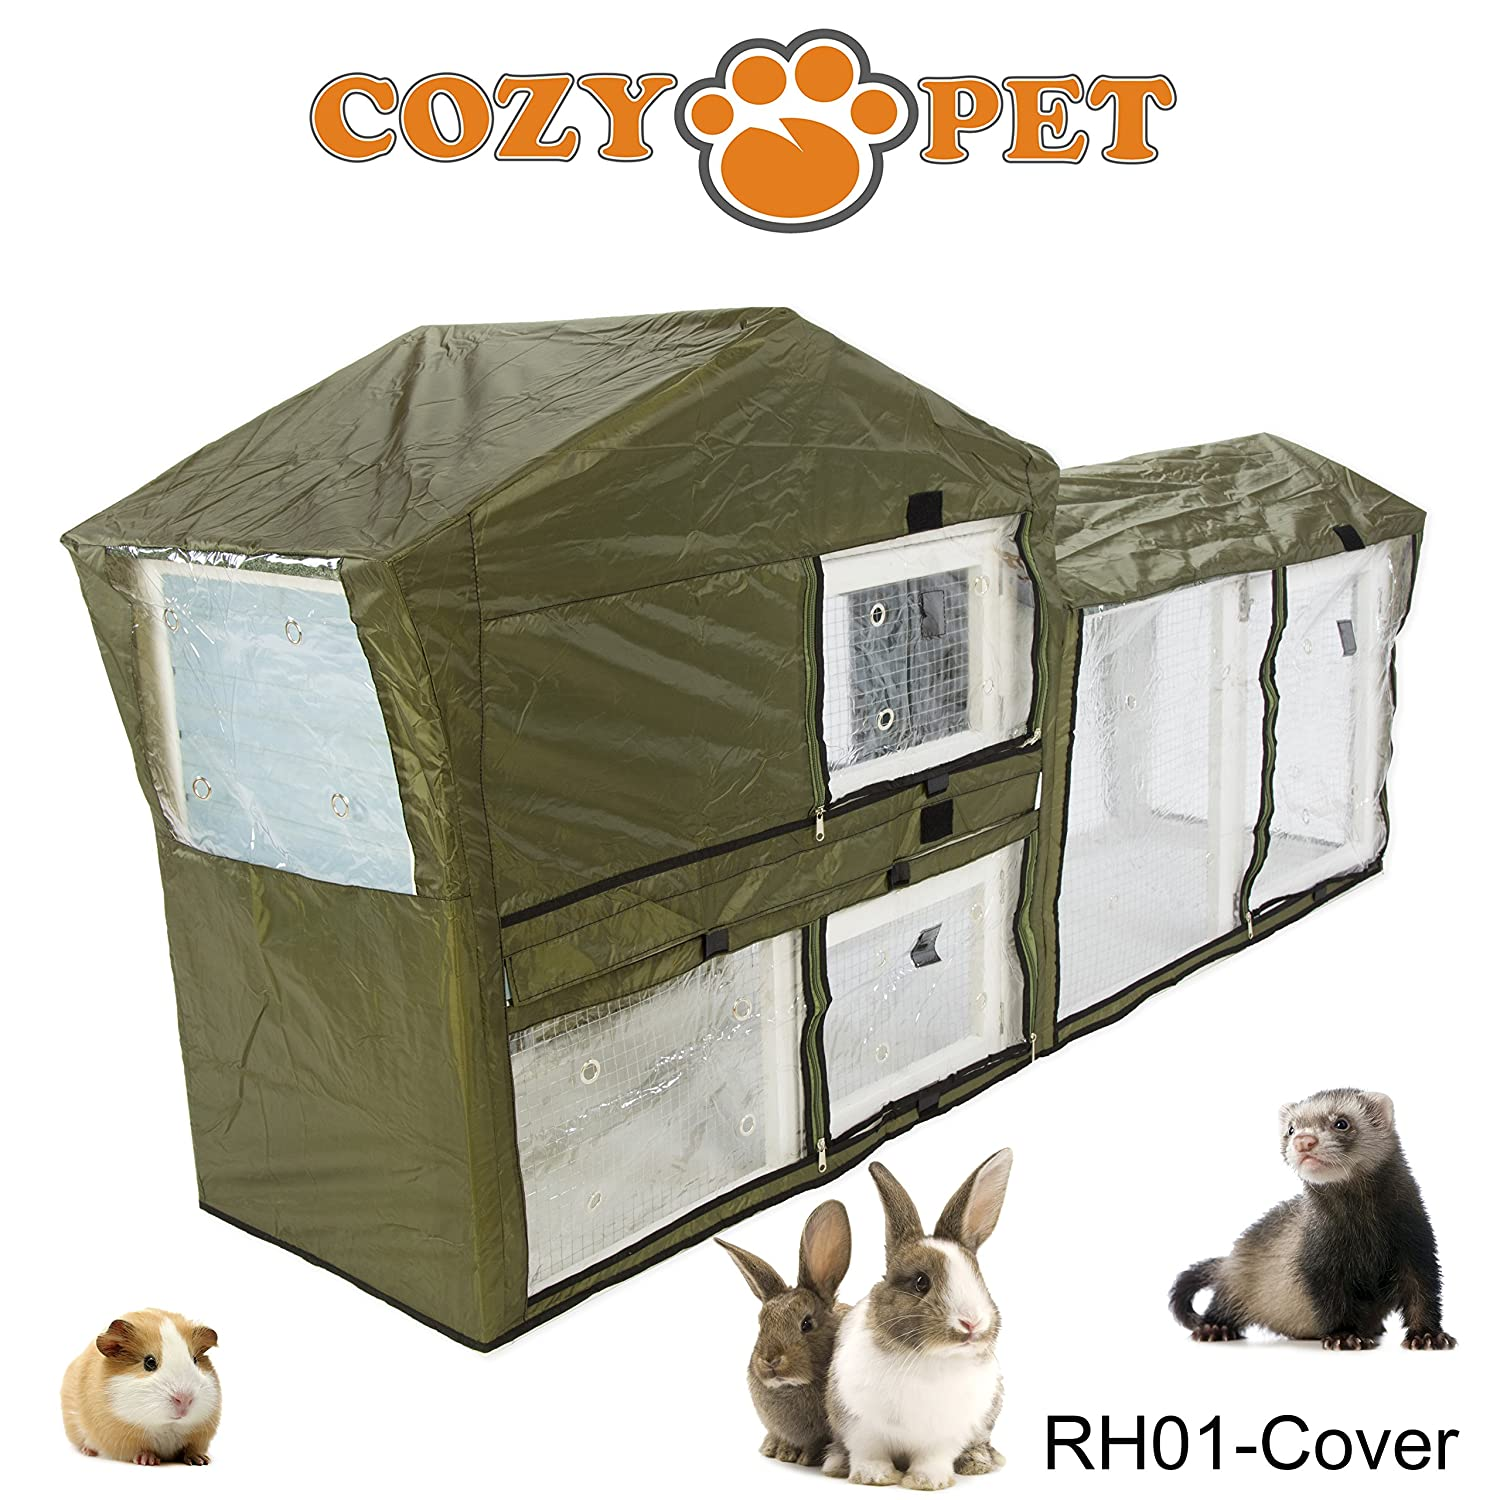 HUTCH COVERS RH01C  Hutch CoverCozy Pet Rabbit Hutch Guinea Pig Hutches Run Runs Large 2 Tier Double Decker Ferret Cage in Pink RH01P (We do not ship to Northern Ireland, Scottish Highlands & Islands, Channel Islands, IOM or IOW)